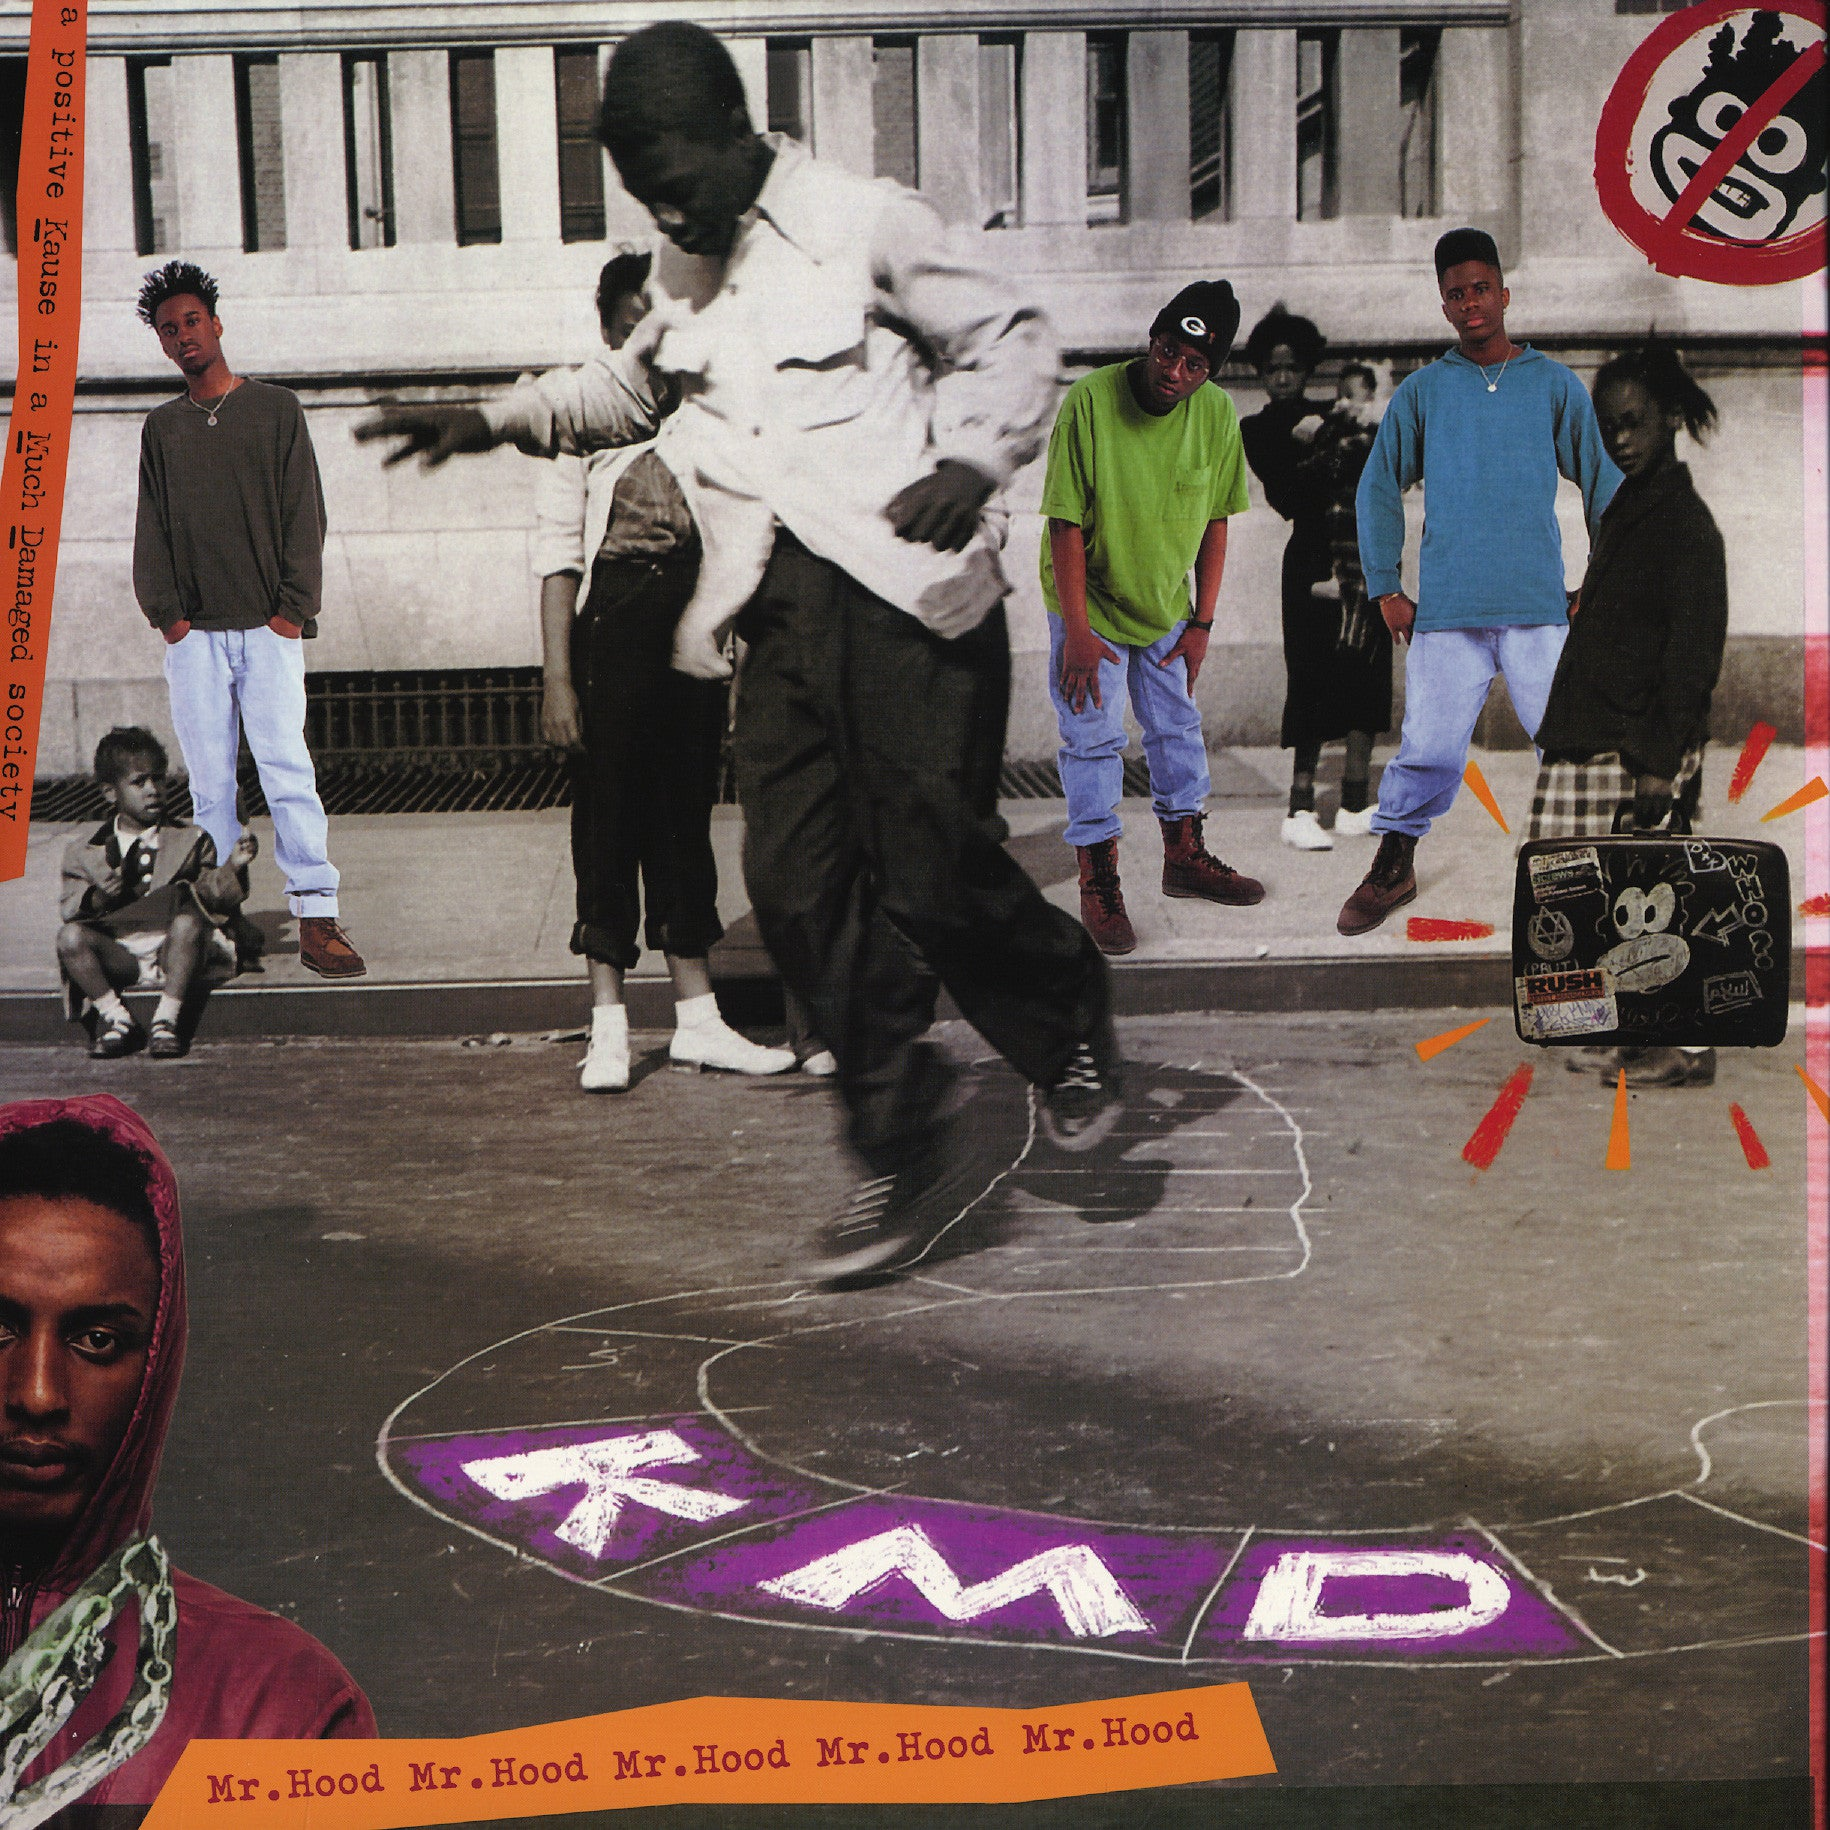 KMD - Mr Hood, CD - The Giant Peach